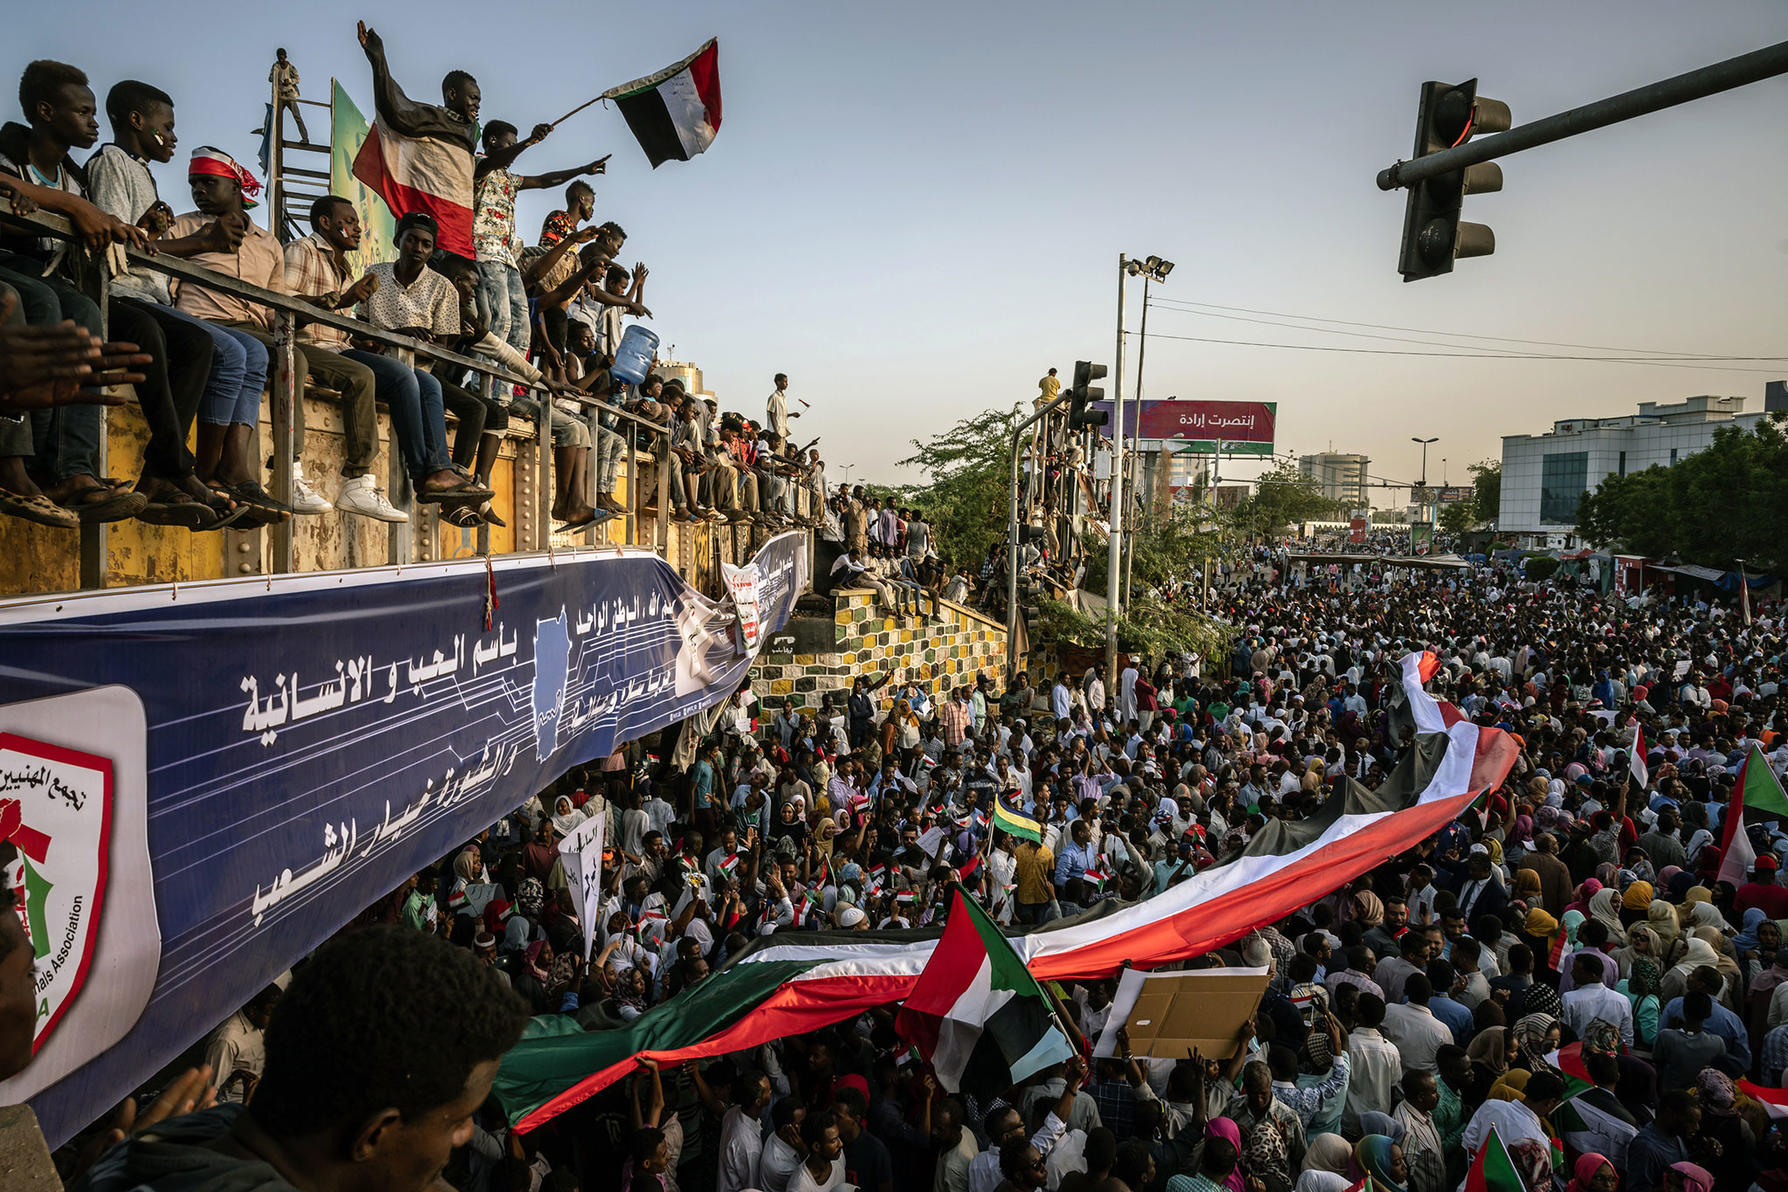 An anti-government protest rally outside military headquarters in Khartoum, Sudan, on April 22, 2019. Months of protests brought an end to the three-decade rule of Omar al-Bashir. (Bryan Denton/The New York Times)